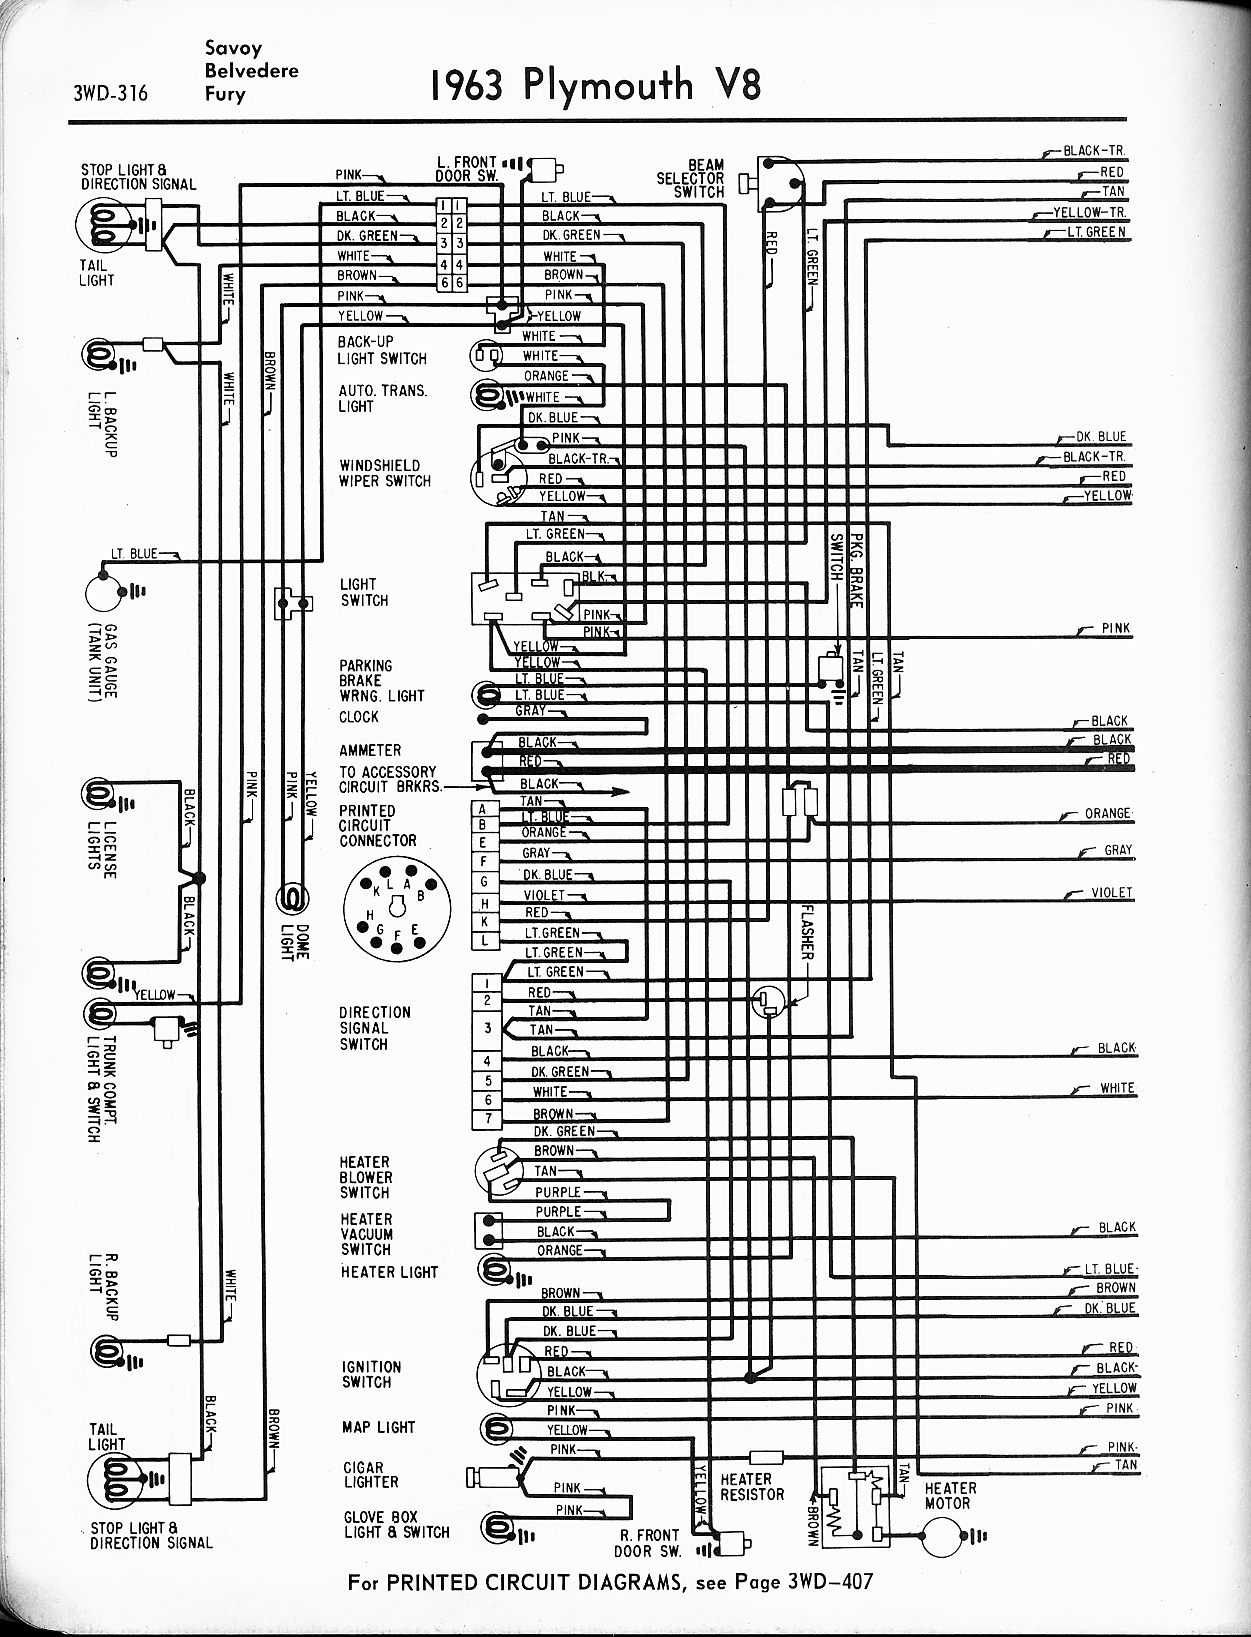 3800 Series 2 Wiring Diagram 28 Images 04 Grand Prix Fuse Box Location Mwire5765 316 1956 1965 Plymouth The Old Car Manual Project Free Buick